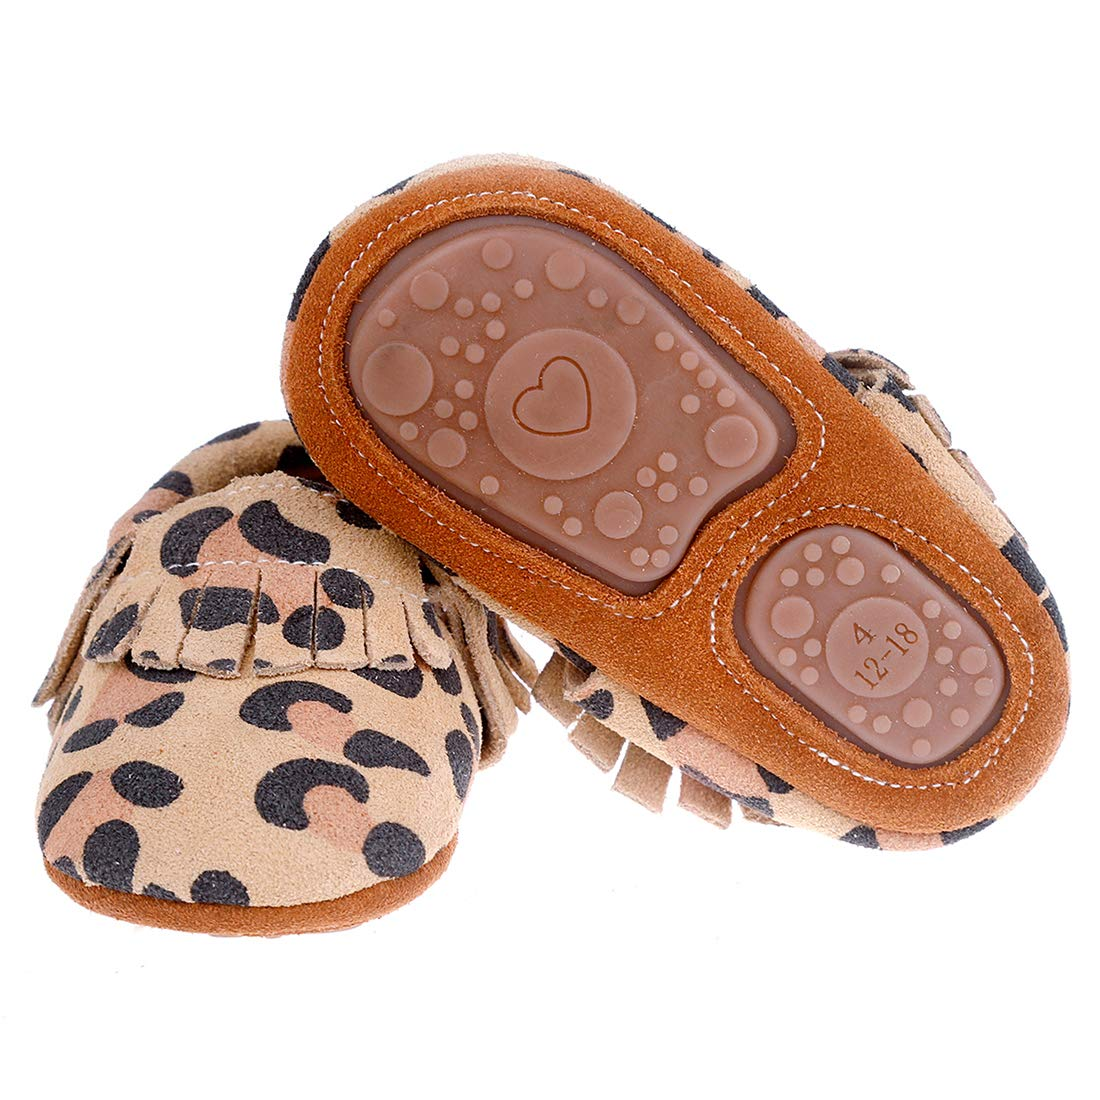 9b373b9d01c Pidoli Baby Leather Shoes Unisex Girls Boys Moccasins Rubber Sole ...